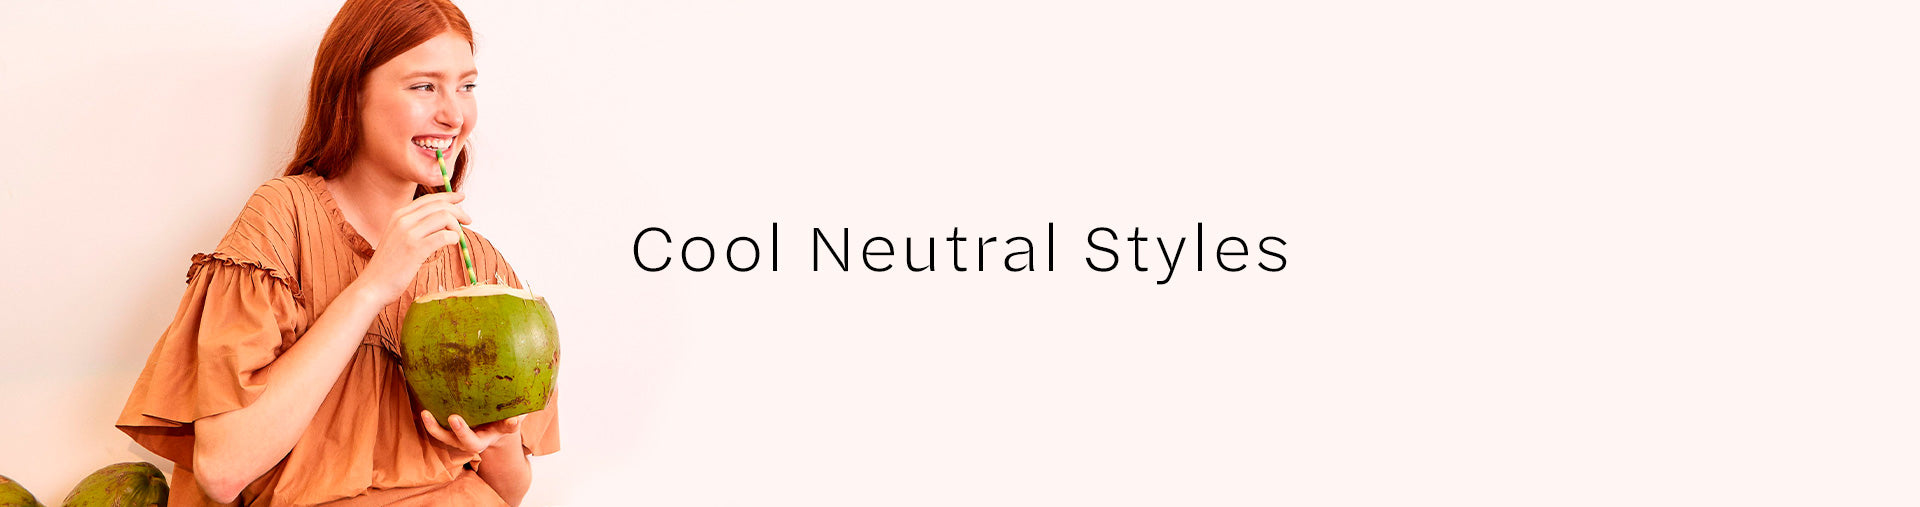 cool_neutrals Image